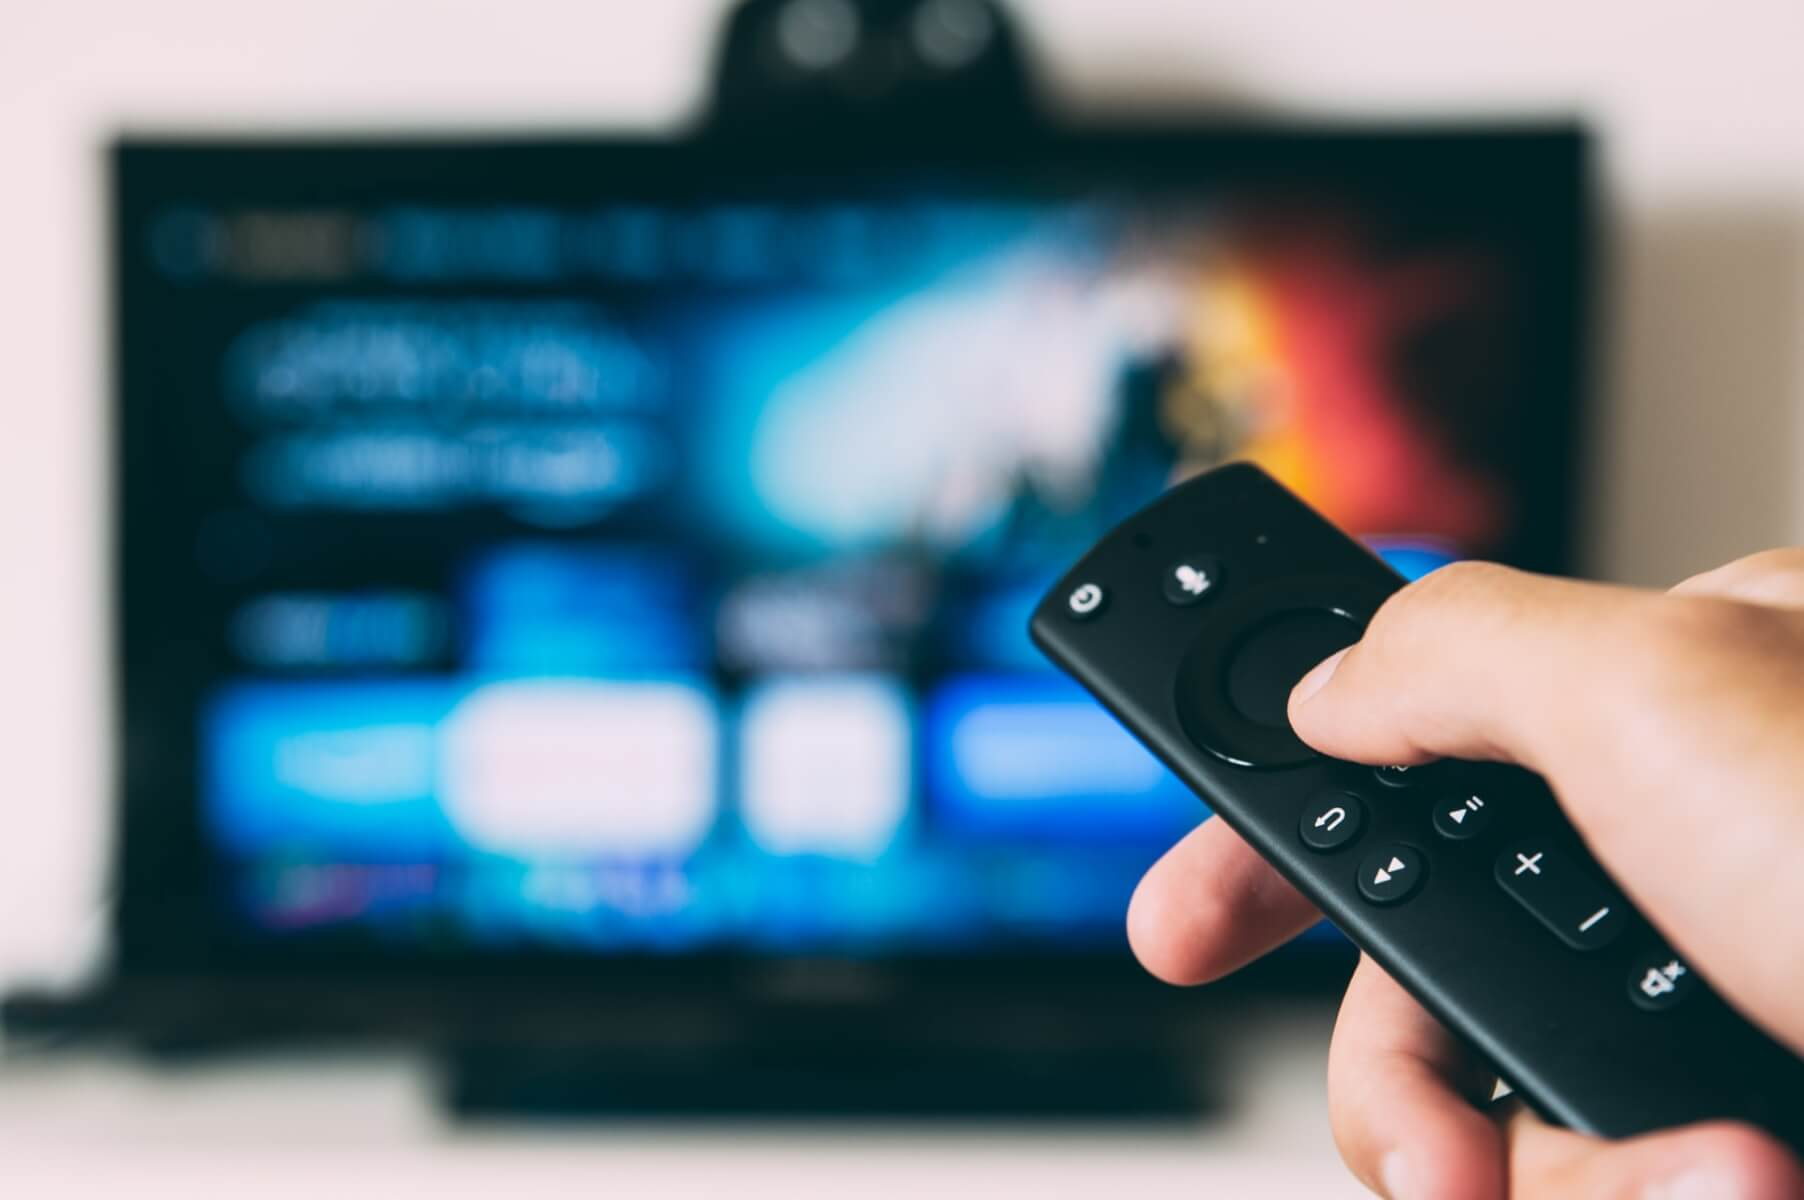 FIVE Smart TVs That Are Not Made In China